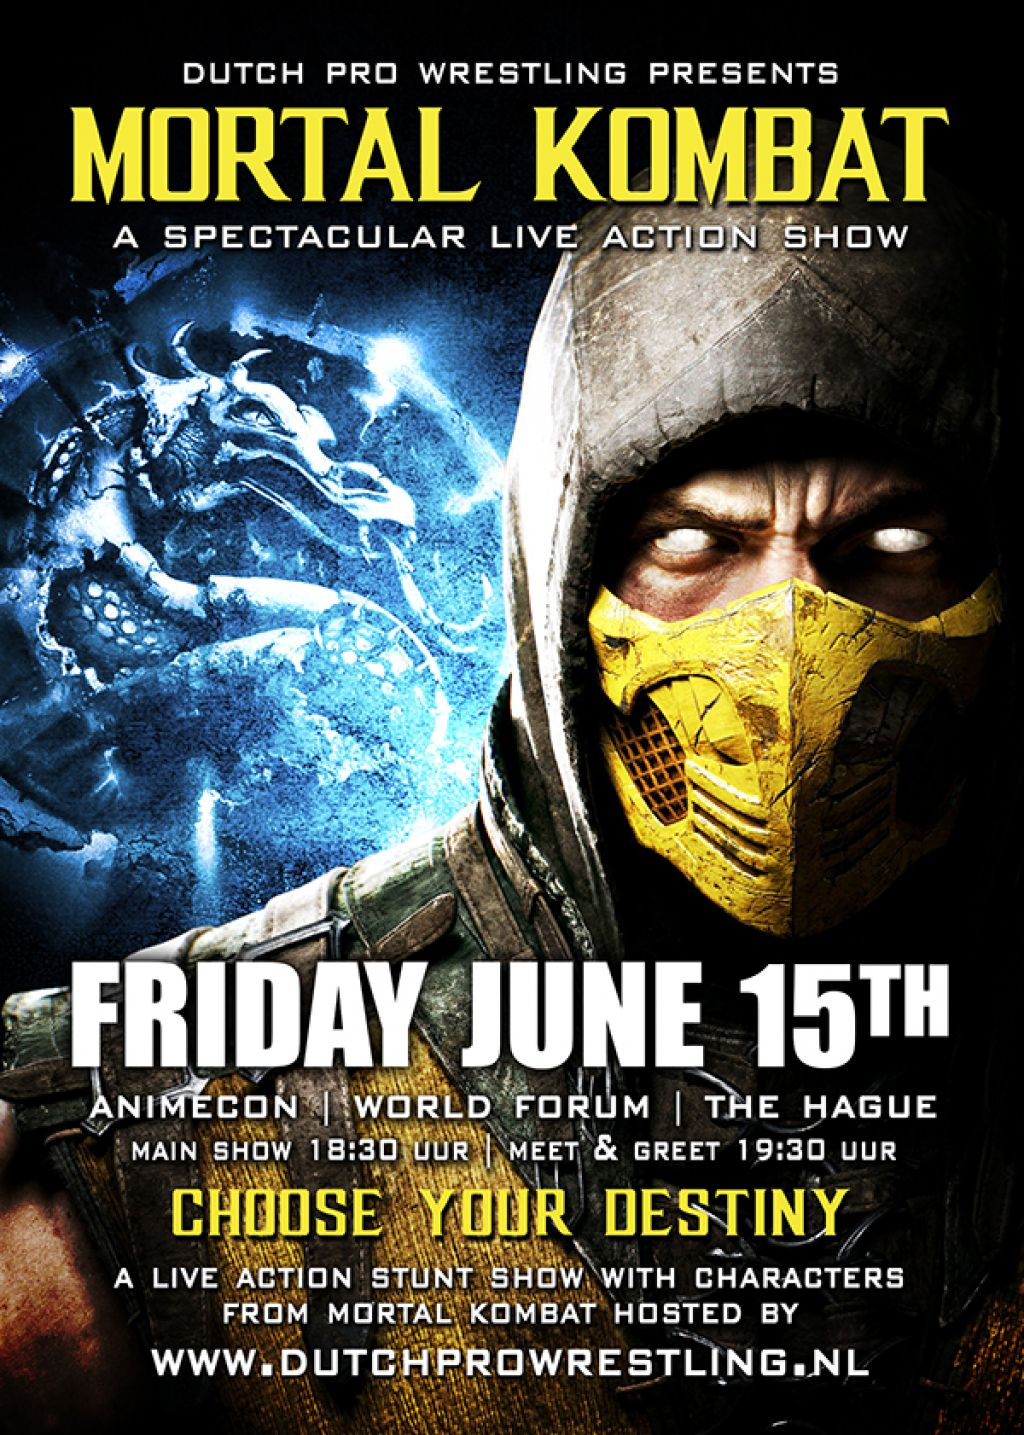 DPW presents Mortal Kombat Live,